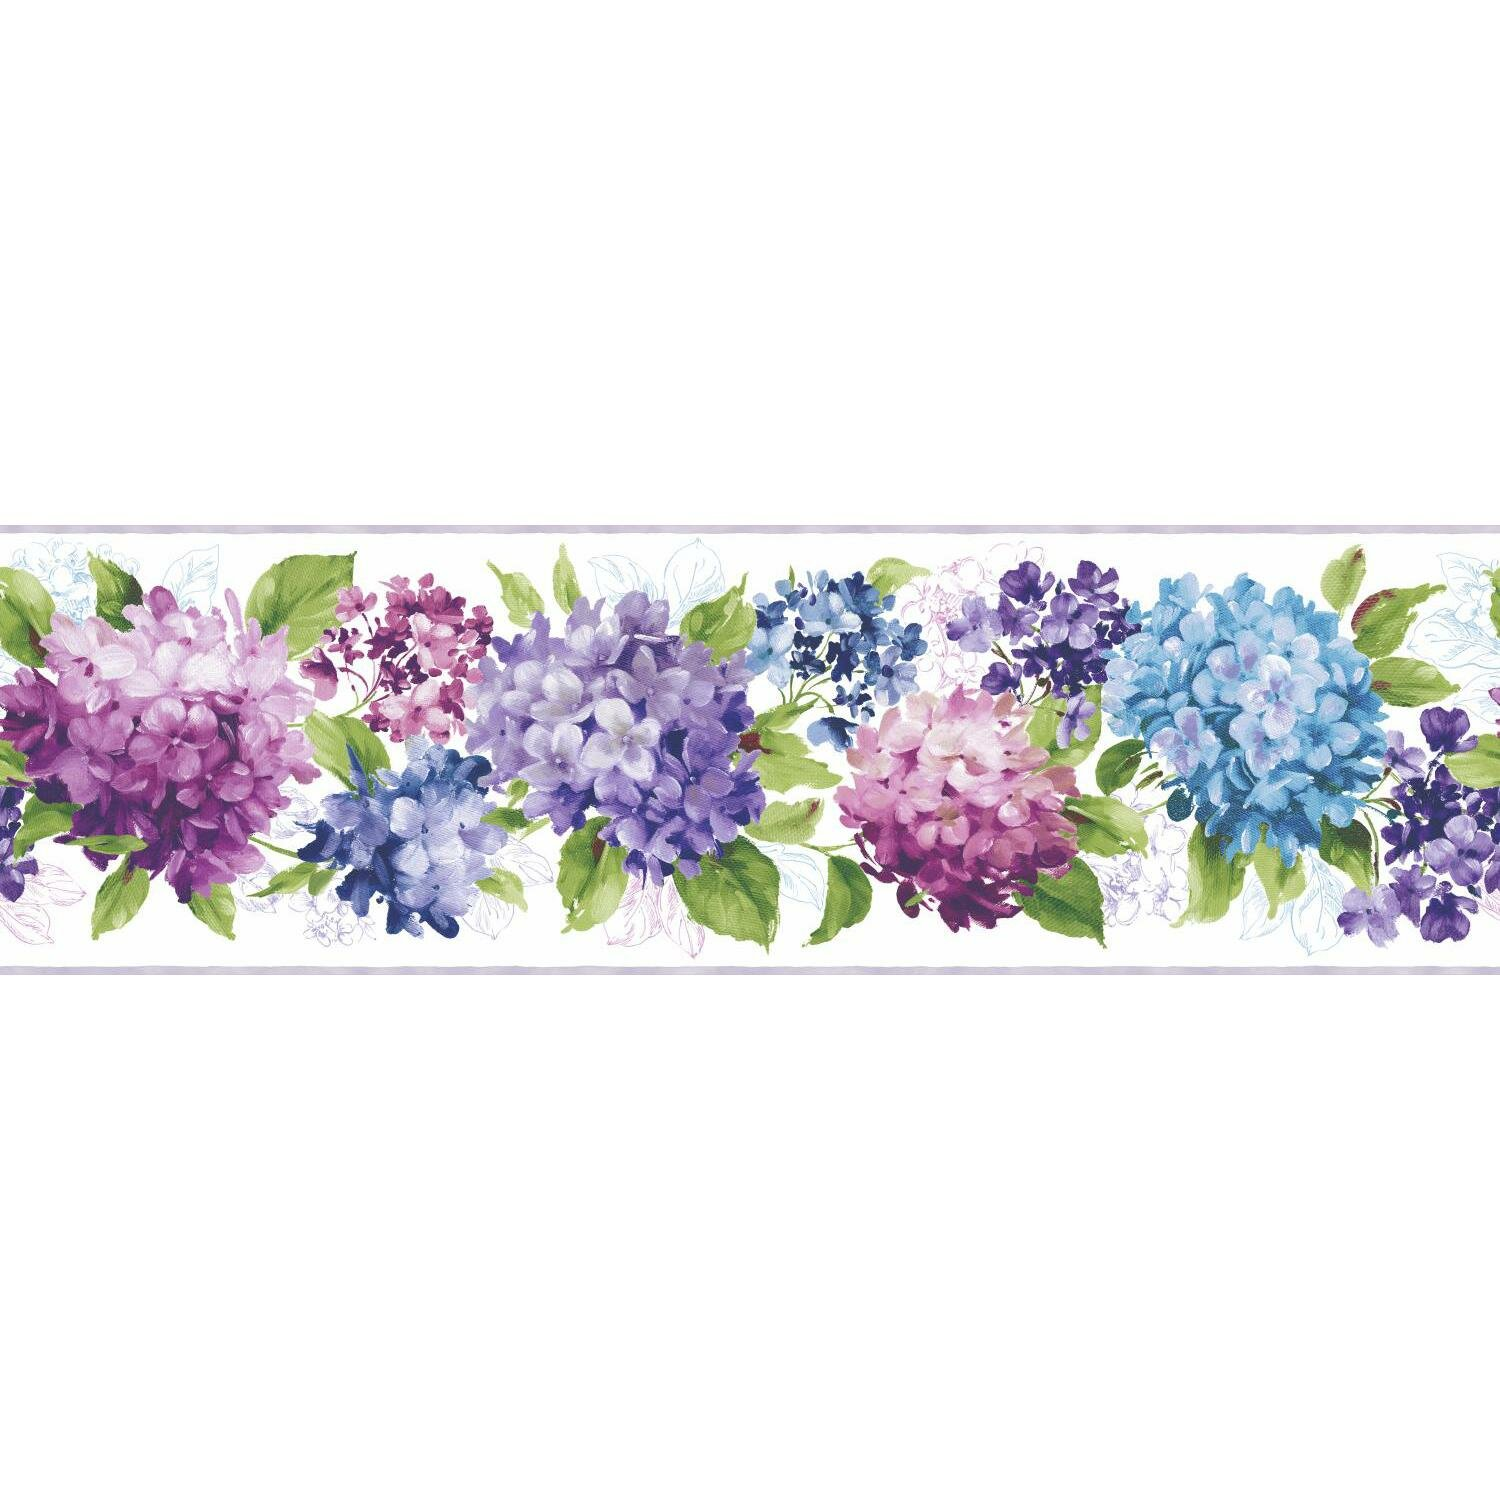 York Wallcoverings Kitchen And Bath Hydrangea 15 X 9 Floral And Botanical Smooth Wallpaper Border Reviews Wayfair